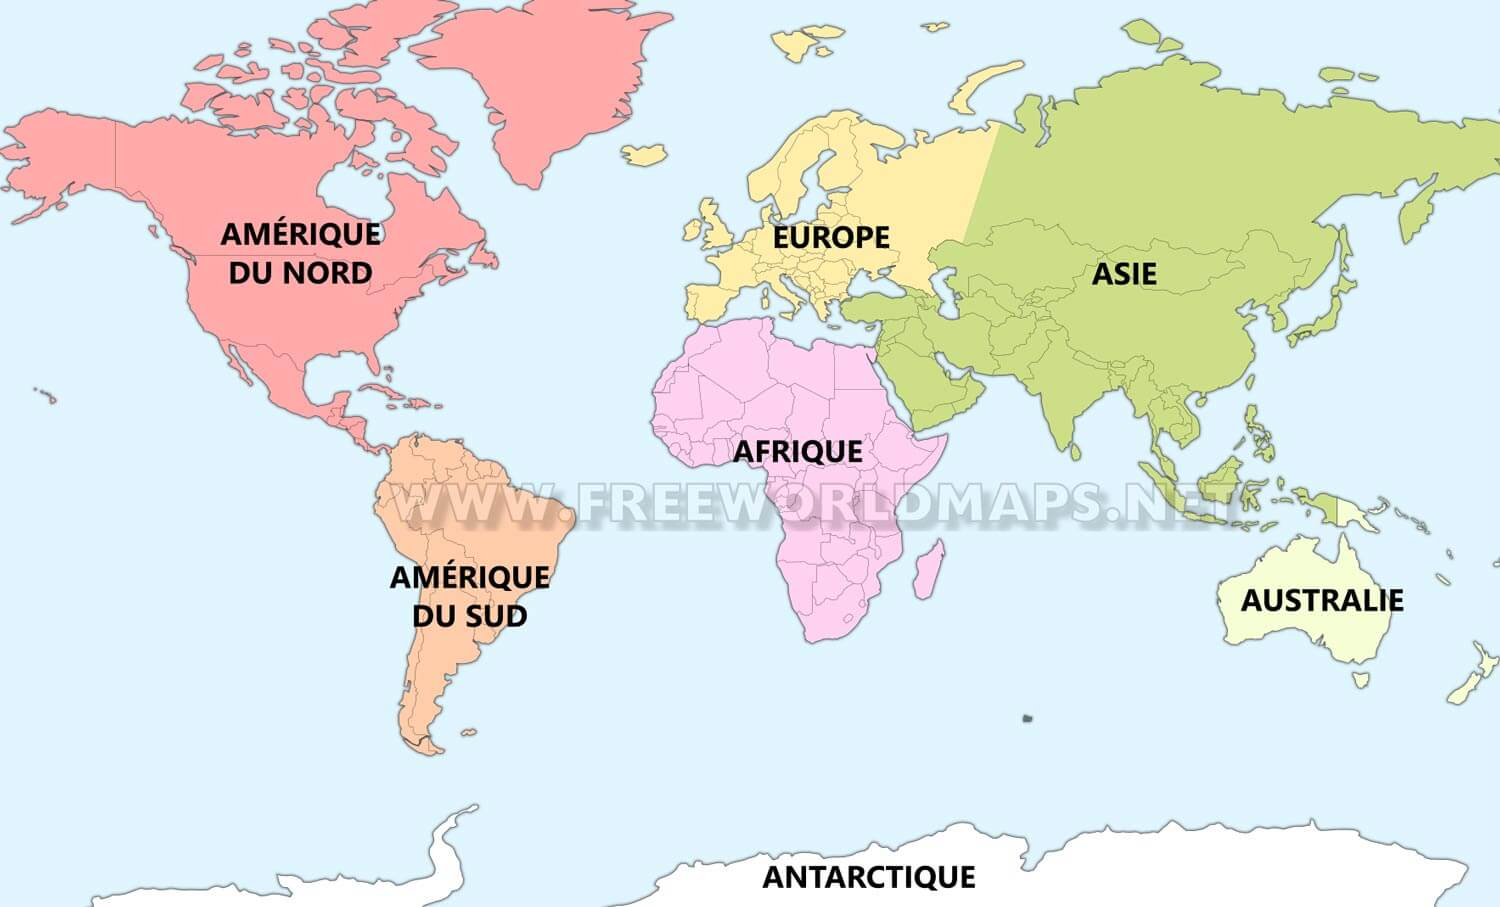 Les Sept Continents Freeworldmaps